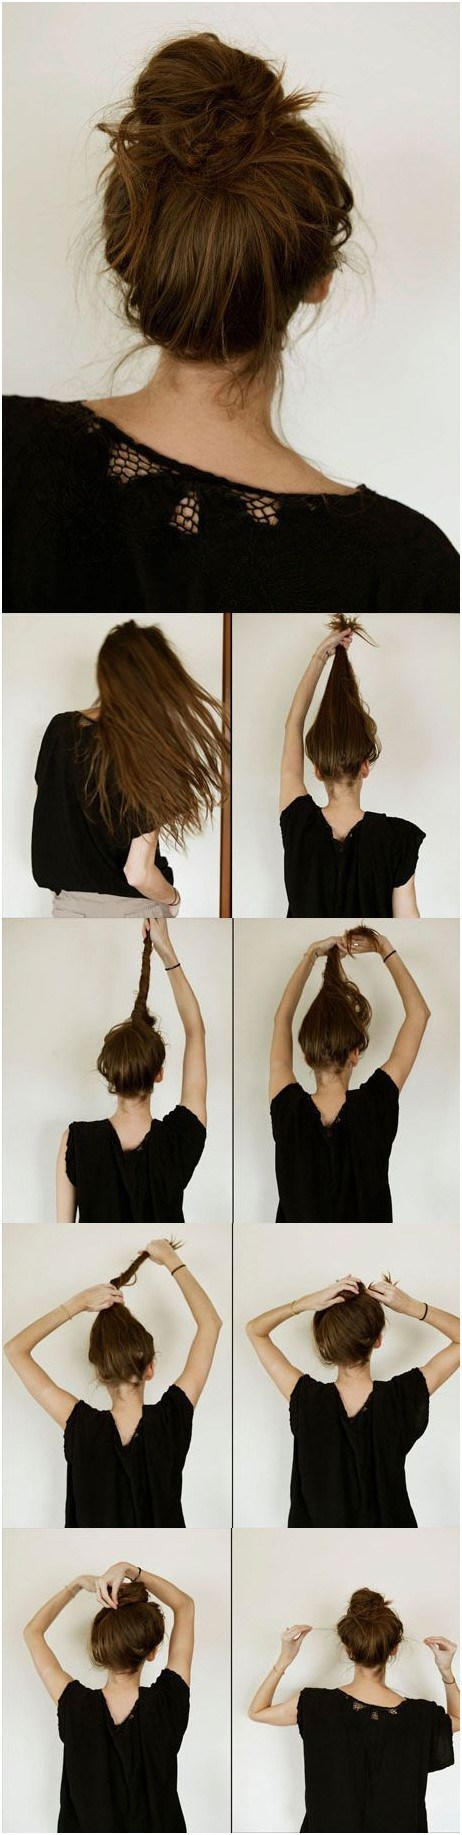 Hair Tutorials for Long Hair and Medium Length Hair